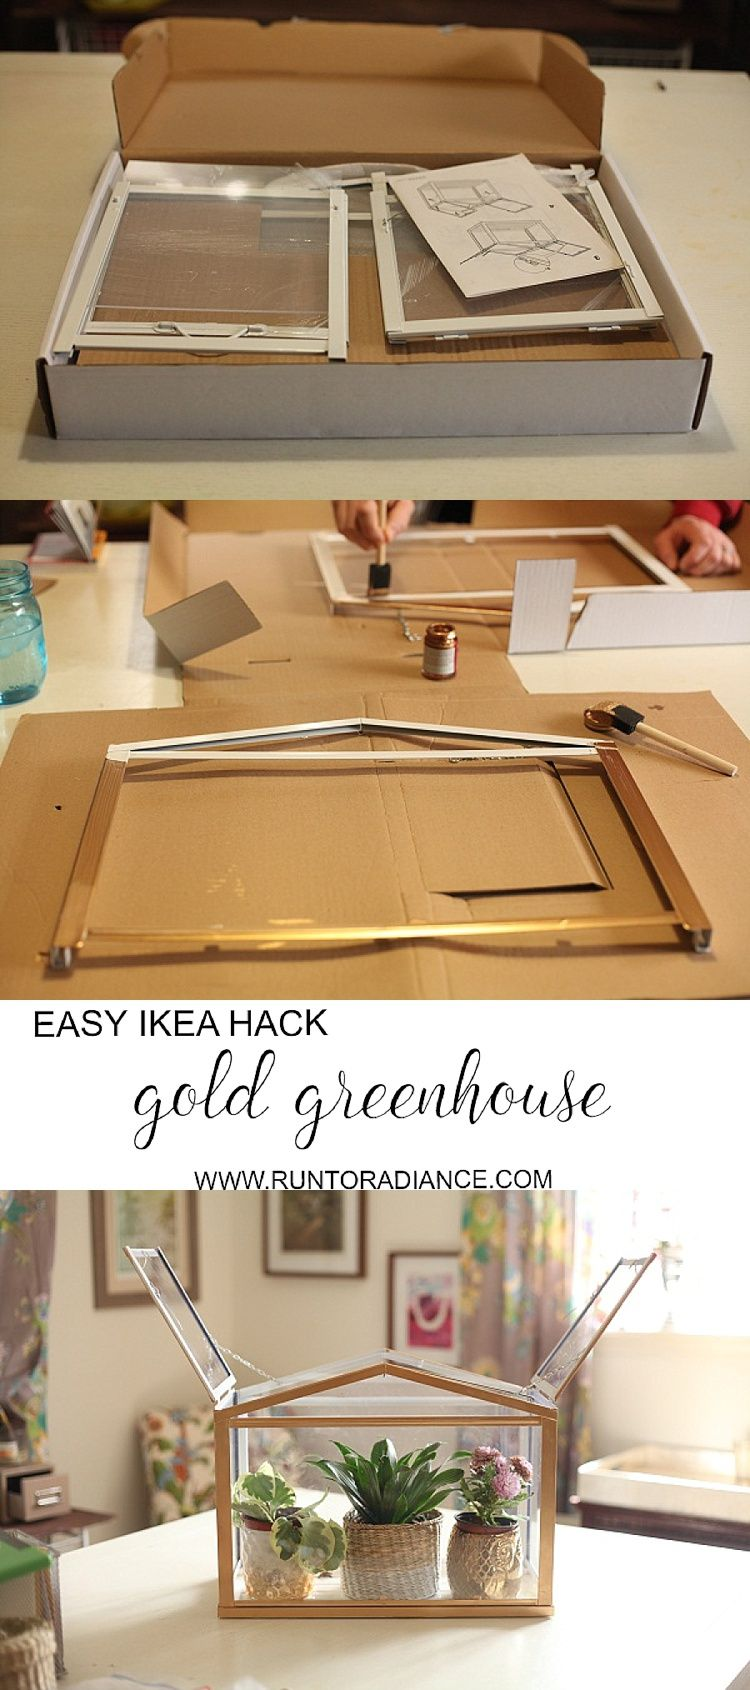 diy gold mini greenhouse from ikea caffeine curls pinterest deko sch ne zuhause und. Black Bedroom Furniture Sets. Home Design Ideas